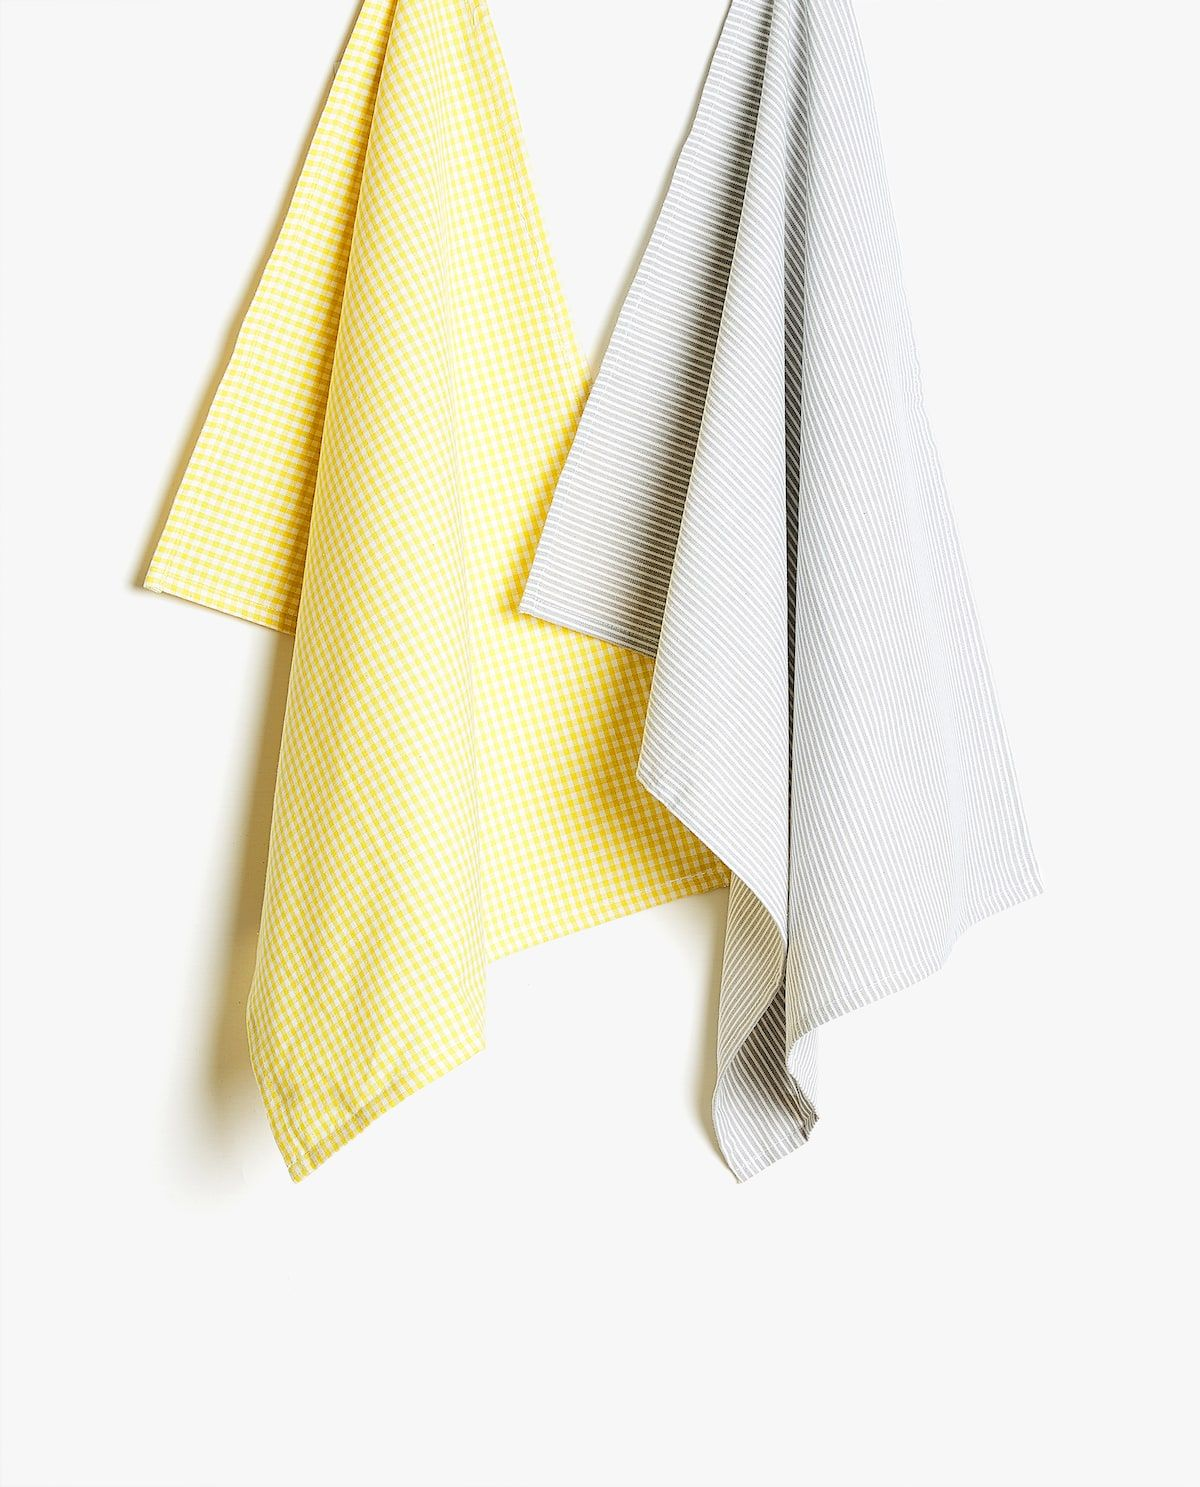 Download Wallpaper White Kitchen Towels Canada